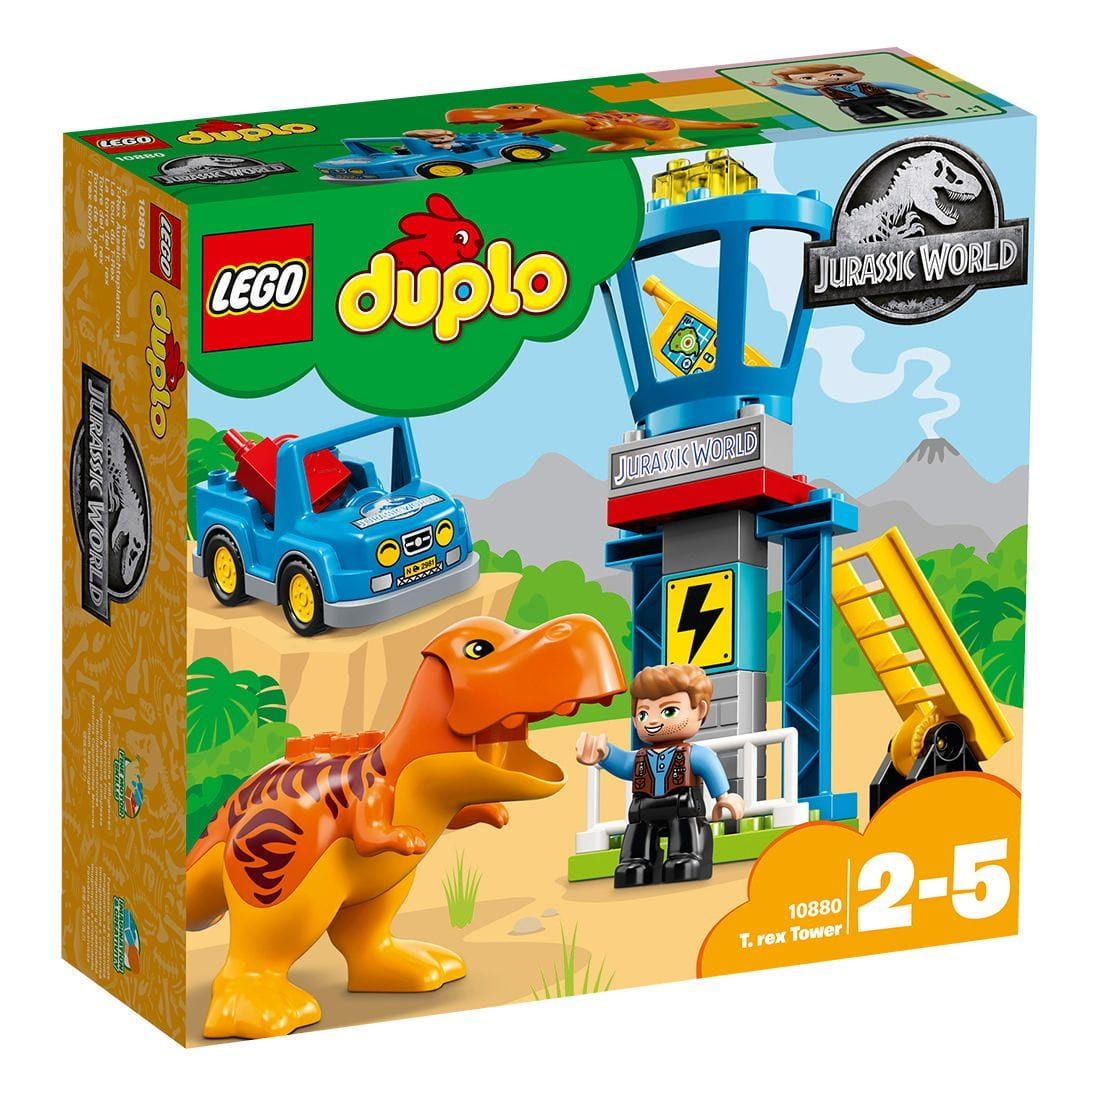 Lego Duplo Jurassic World T Rex Tower 10880 Russells Things